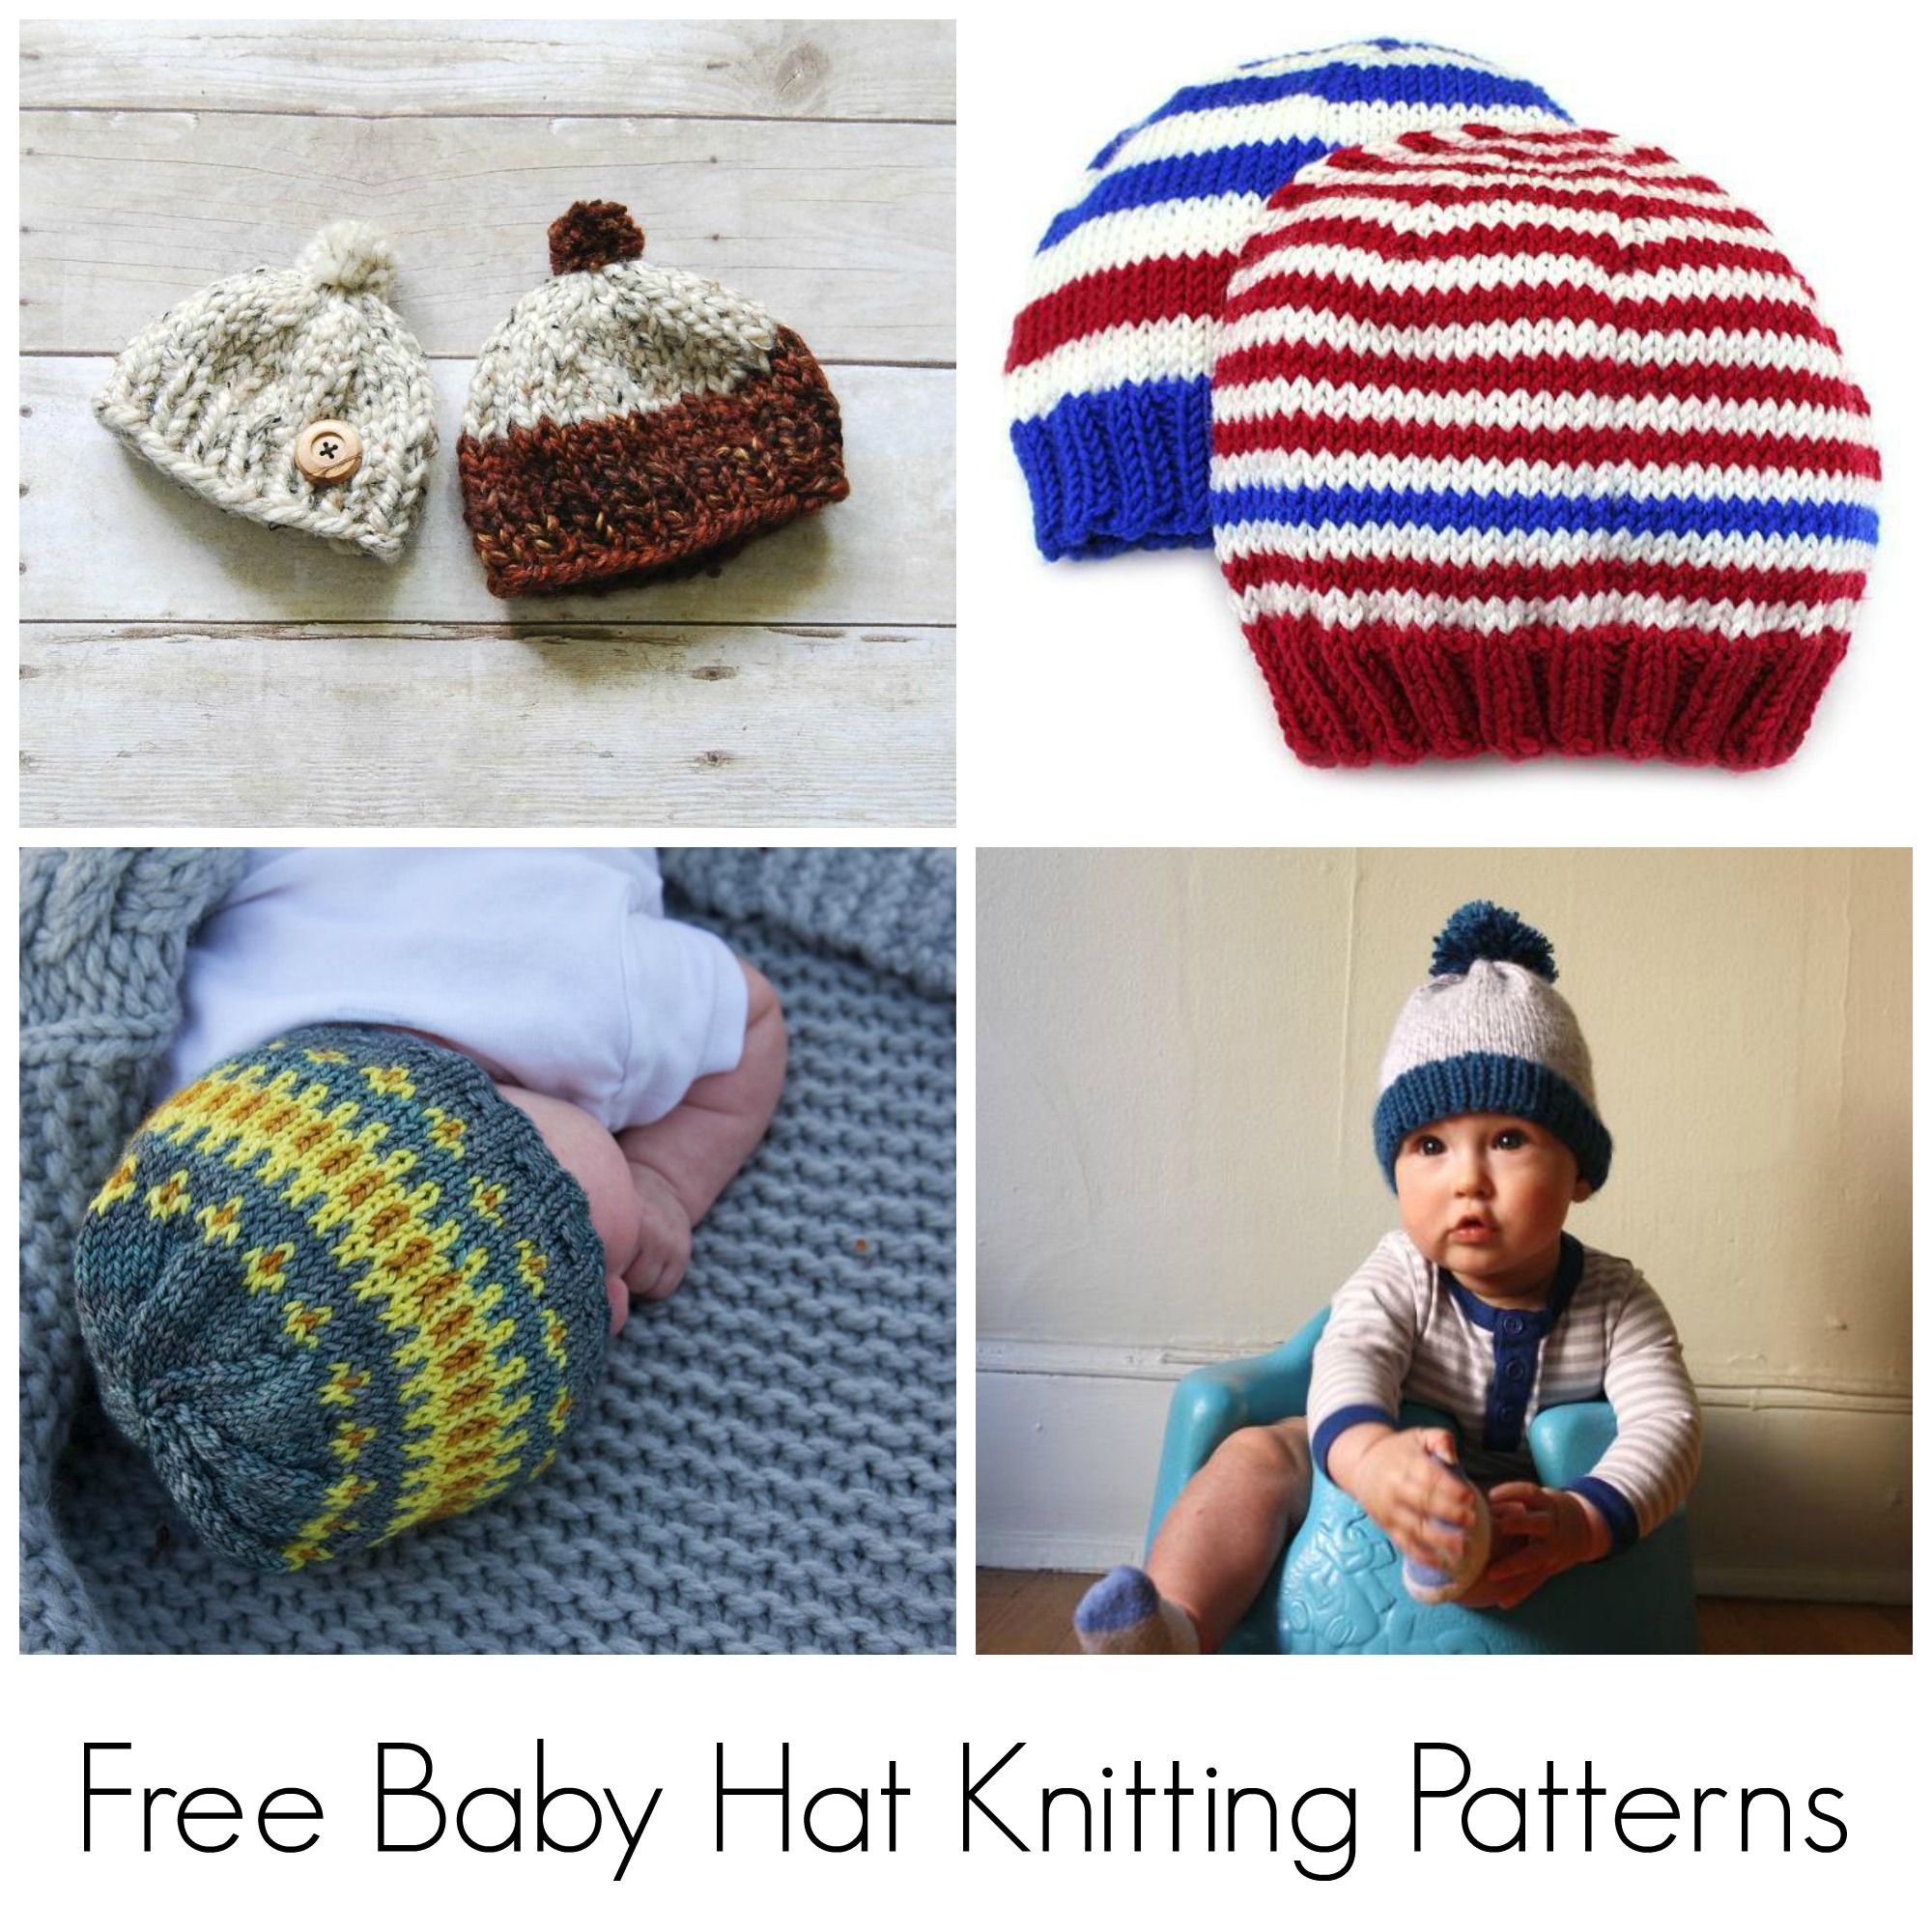 10 FREE Knitting Patterns for Baby Hats | Baby hat knitting pattern ...